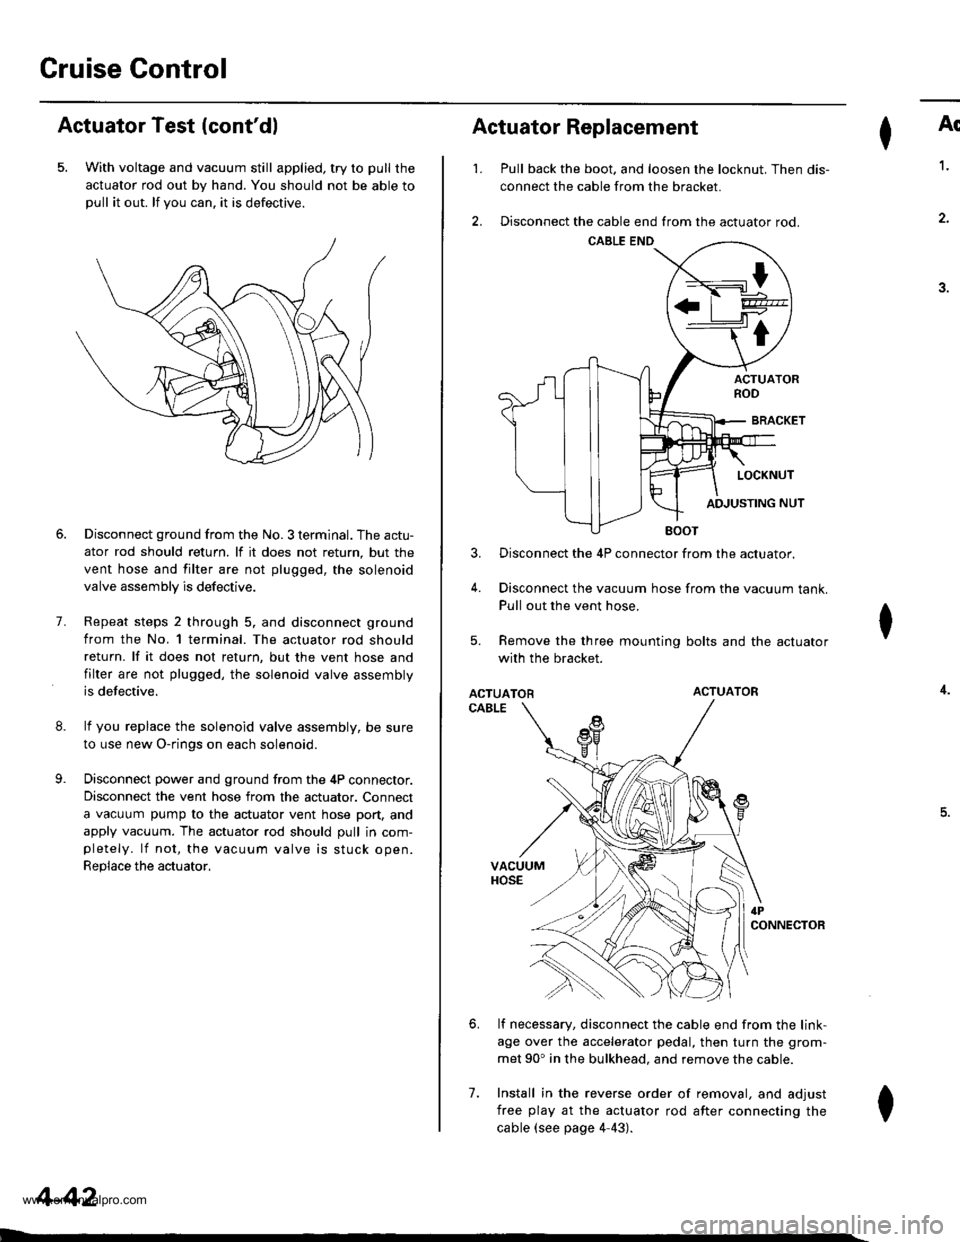 HONDA CR-V 1998 RD1-RD3 / 1.G Workshop Manual  Cruise Gontrol Actuator Test (contdl 5. With voltage and vacuum still applied, try to pull the actuator rod out by hand. You should not be able topull it out. lf you can. it is defectrve. 8. 9. 7. D